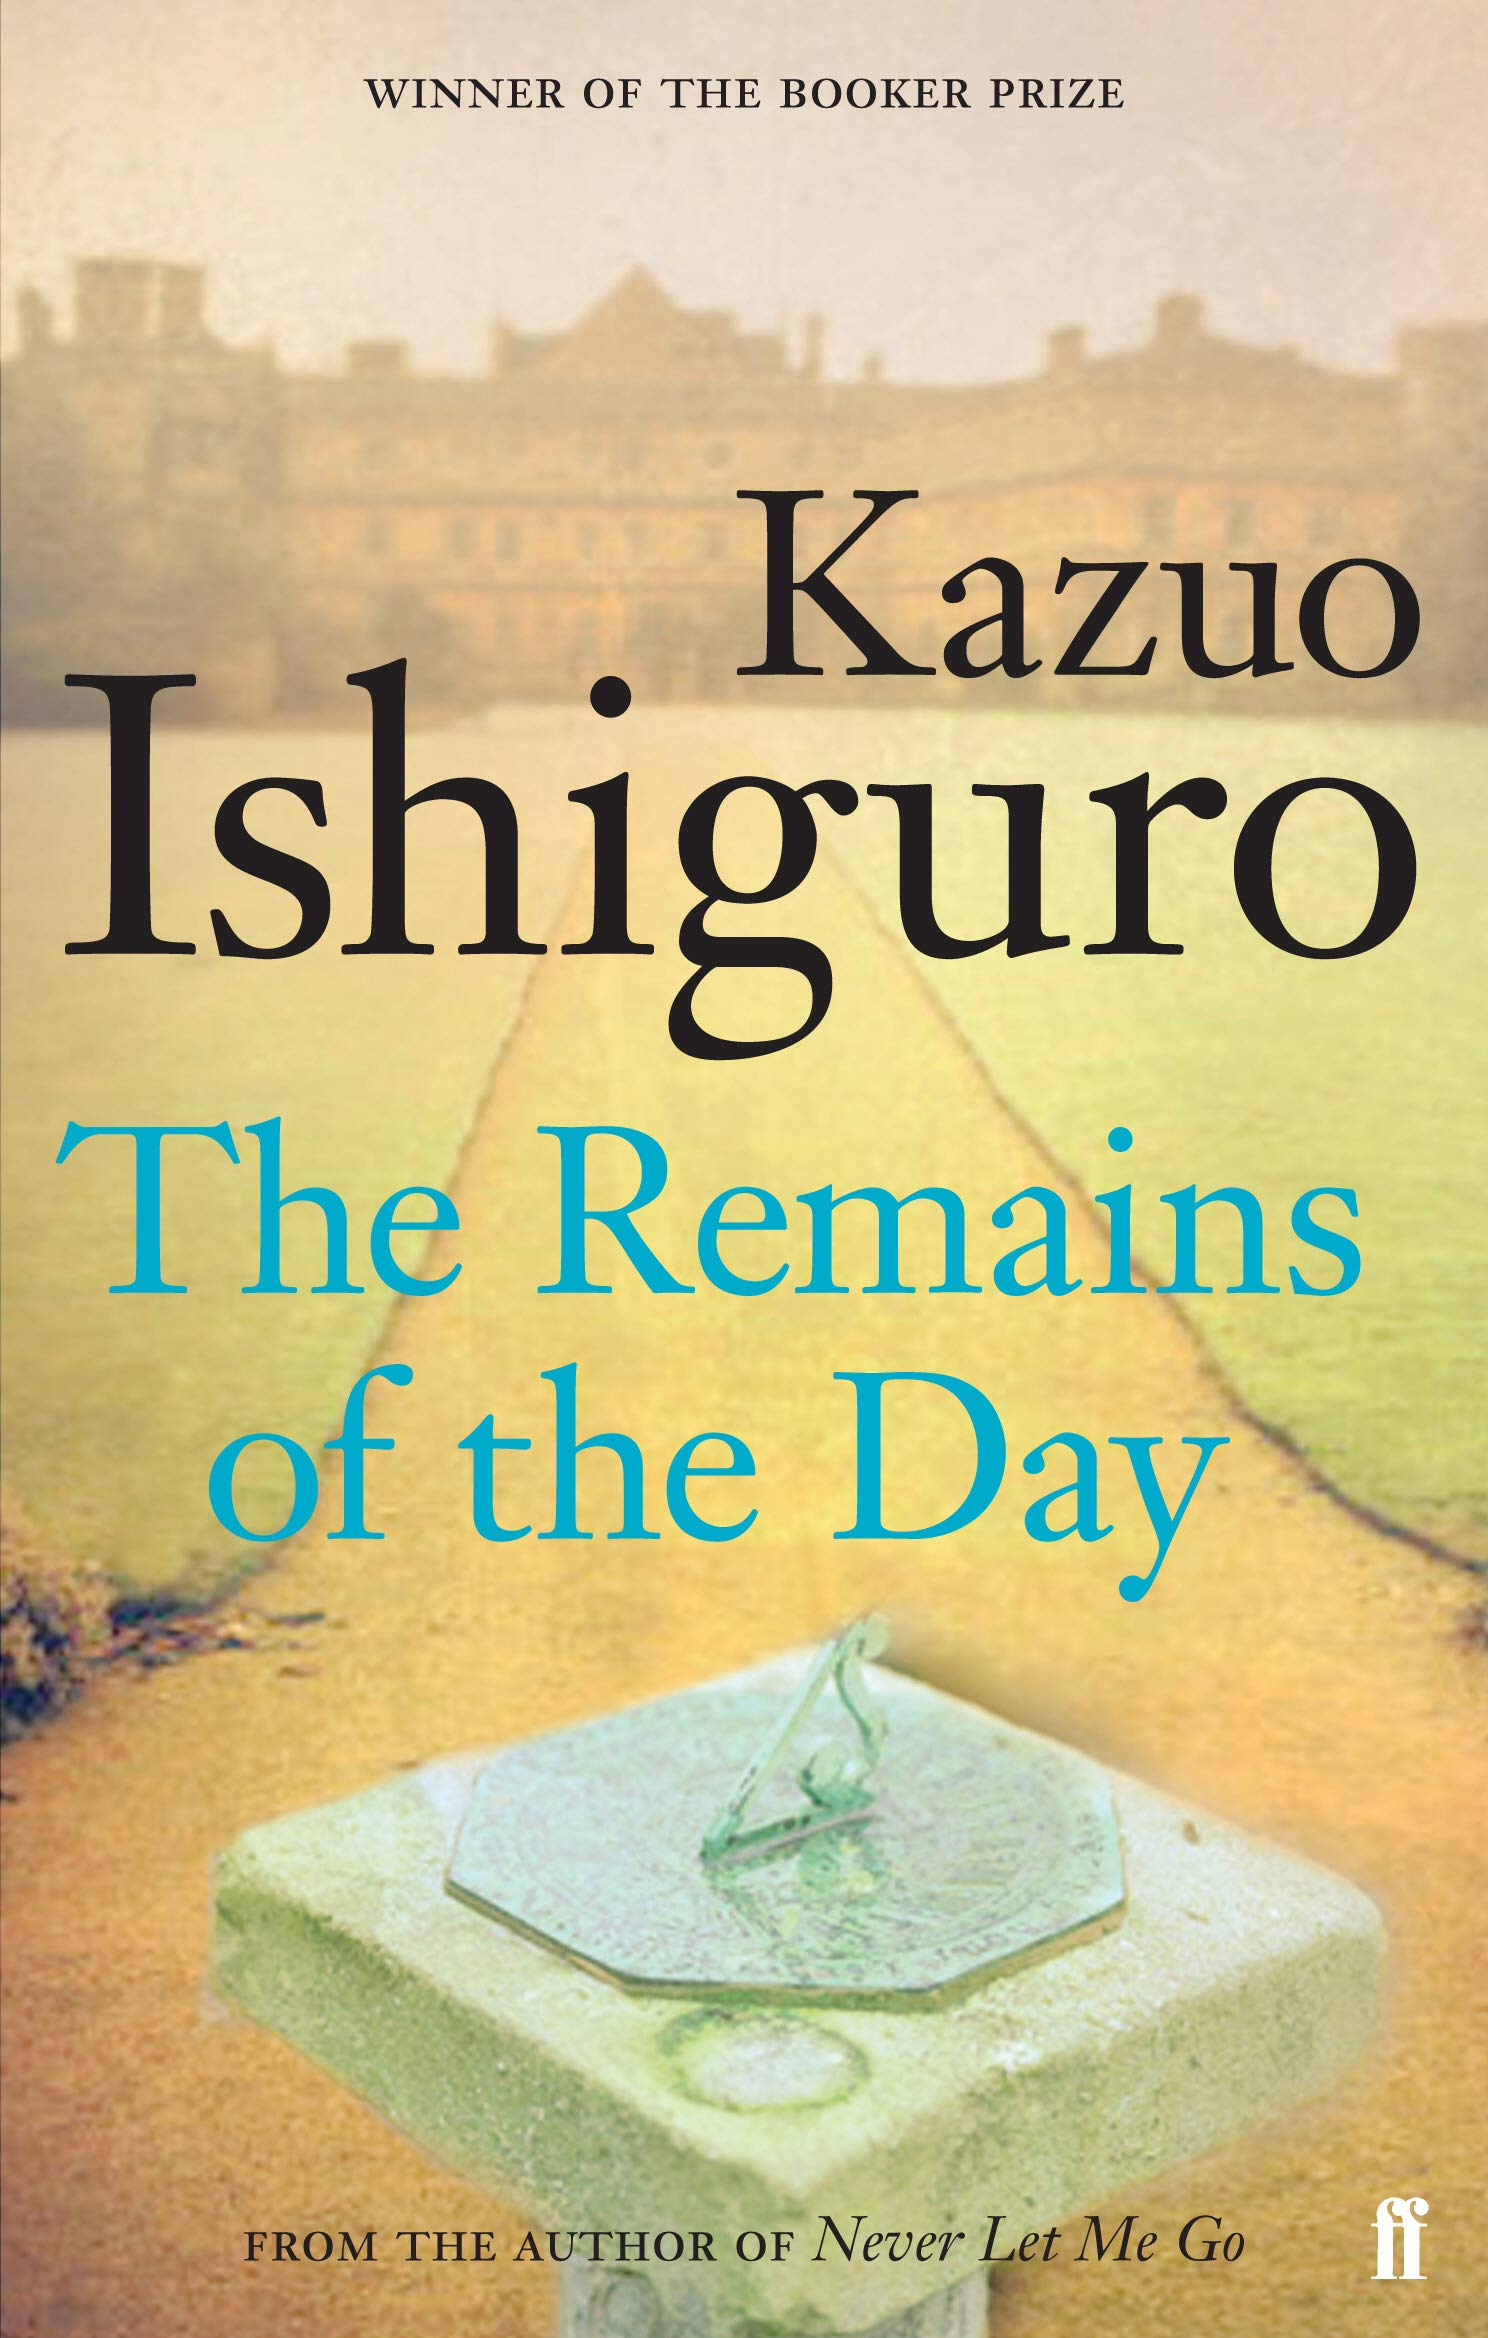 Image result for kazuo ishiguro the remains of the day